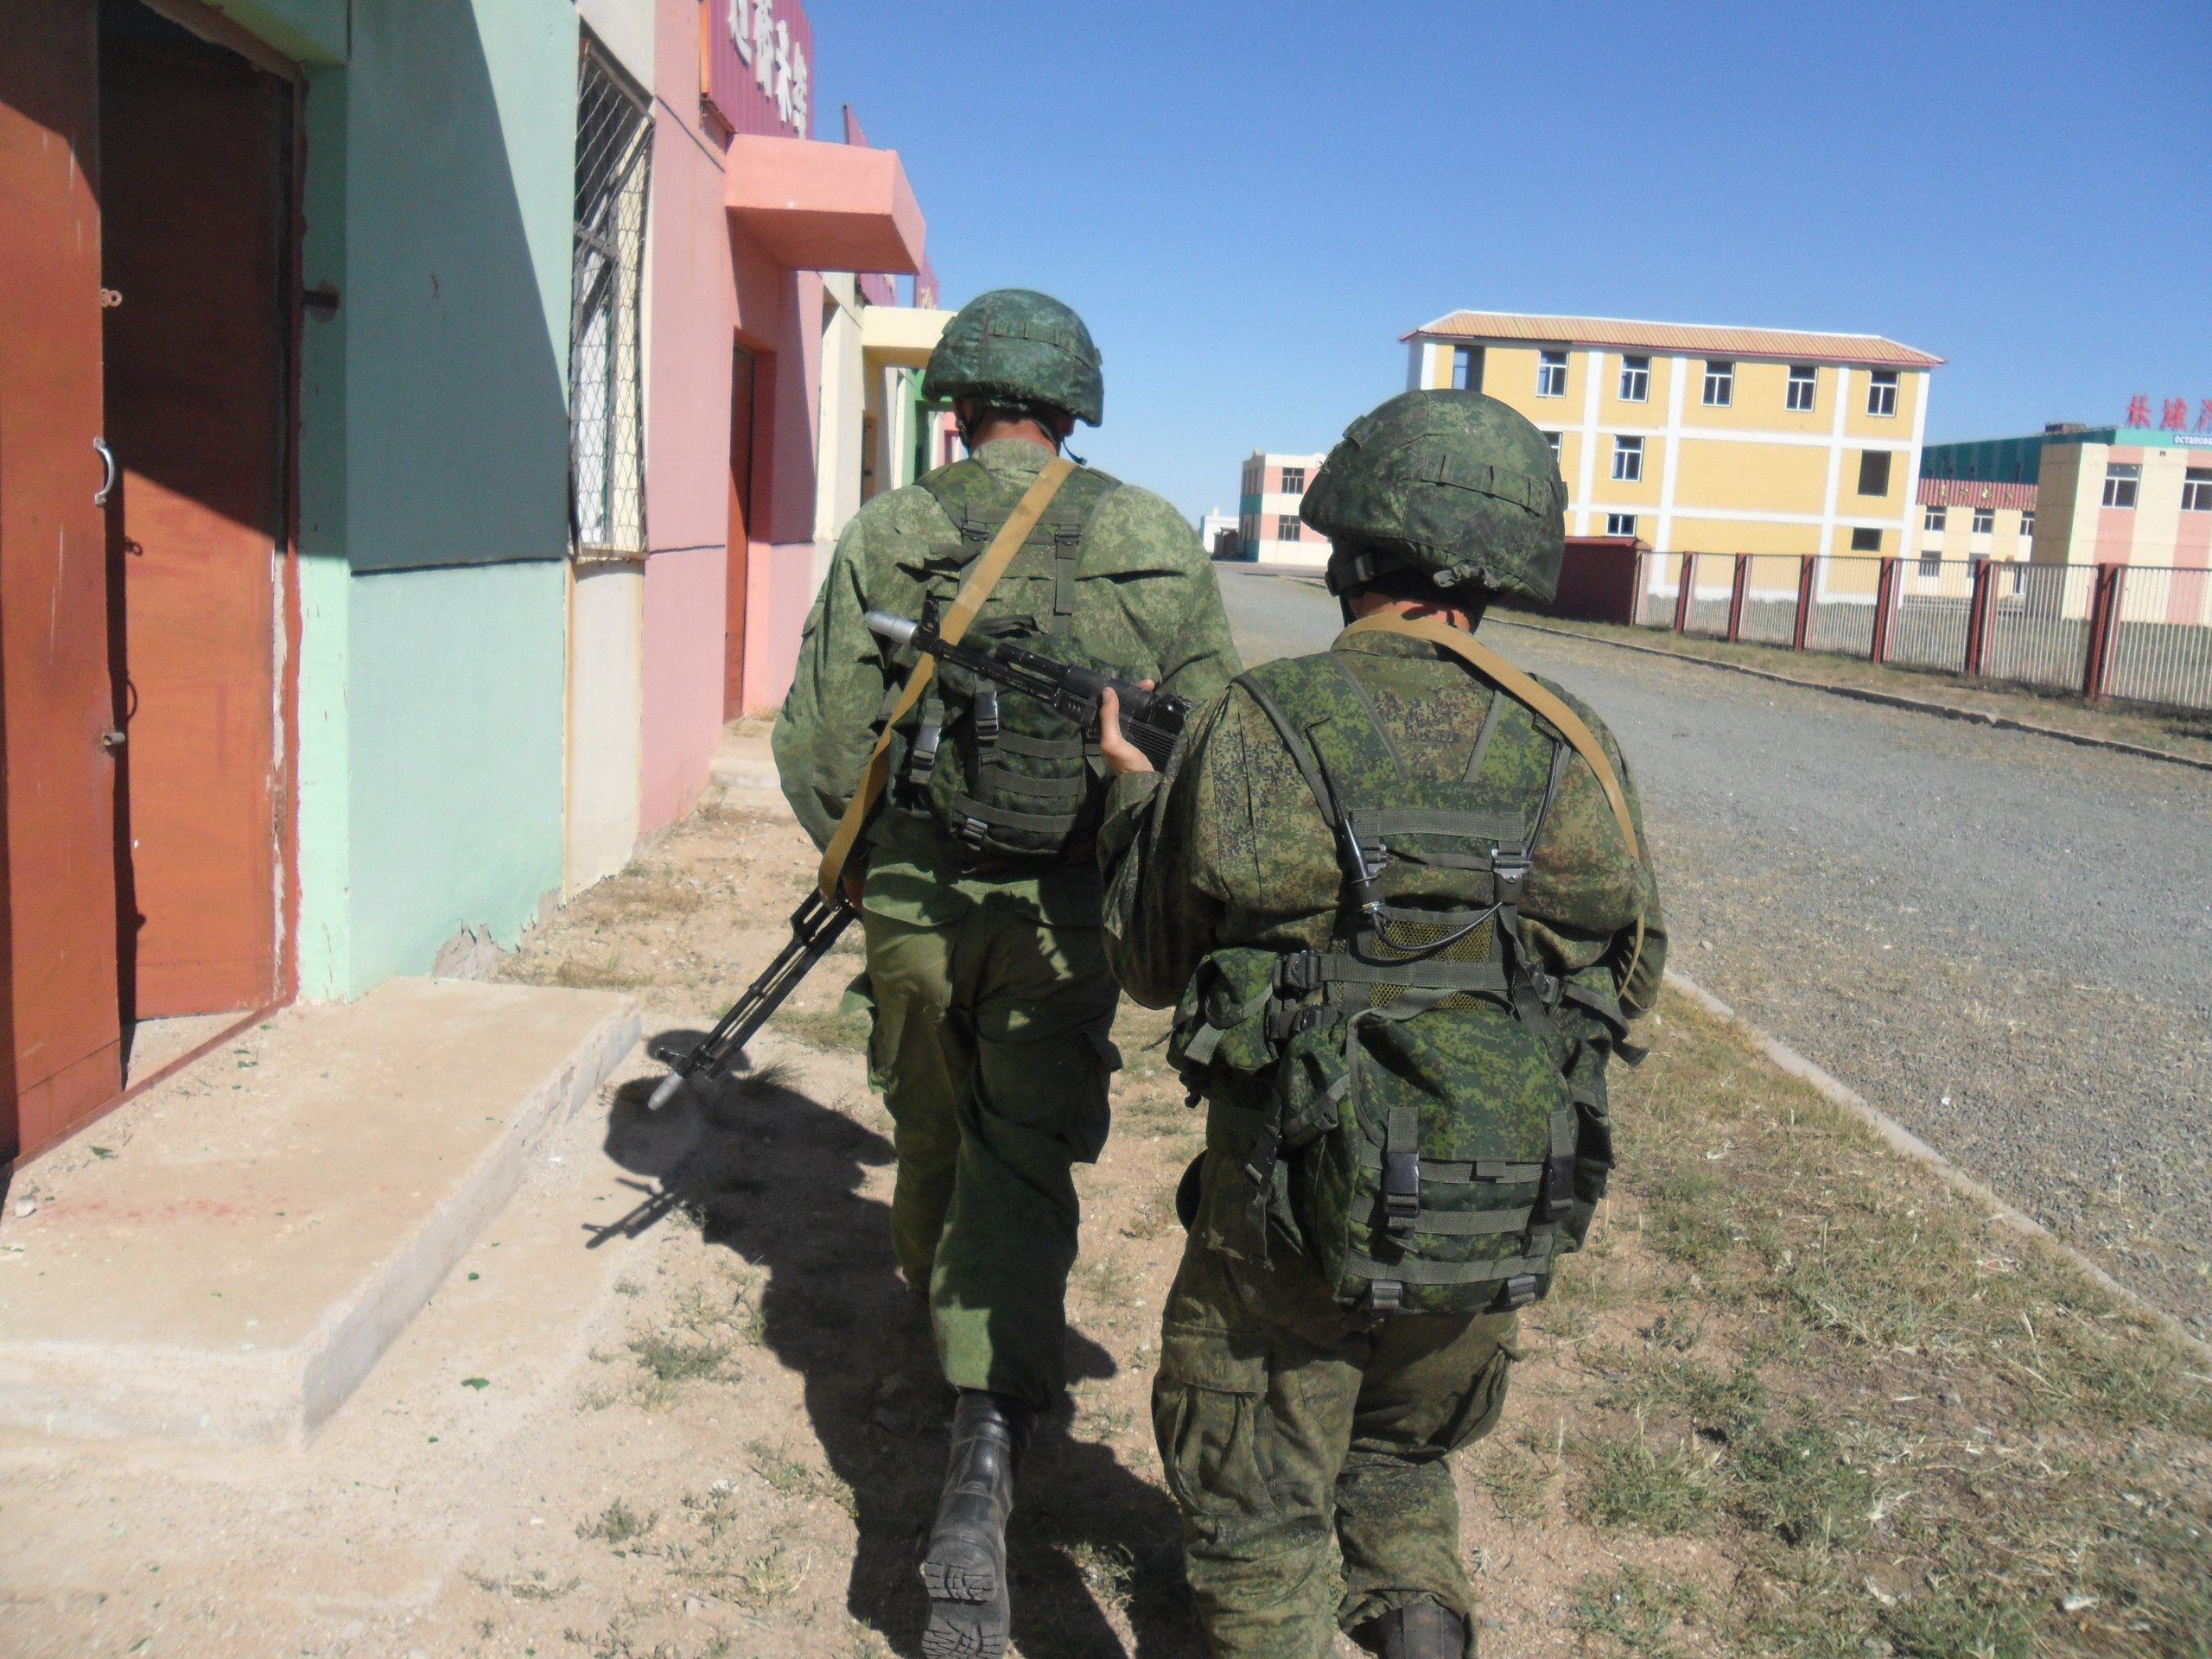 Russian Military Photos and Videos #2 - Page 33 R4DCS4T3DbI